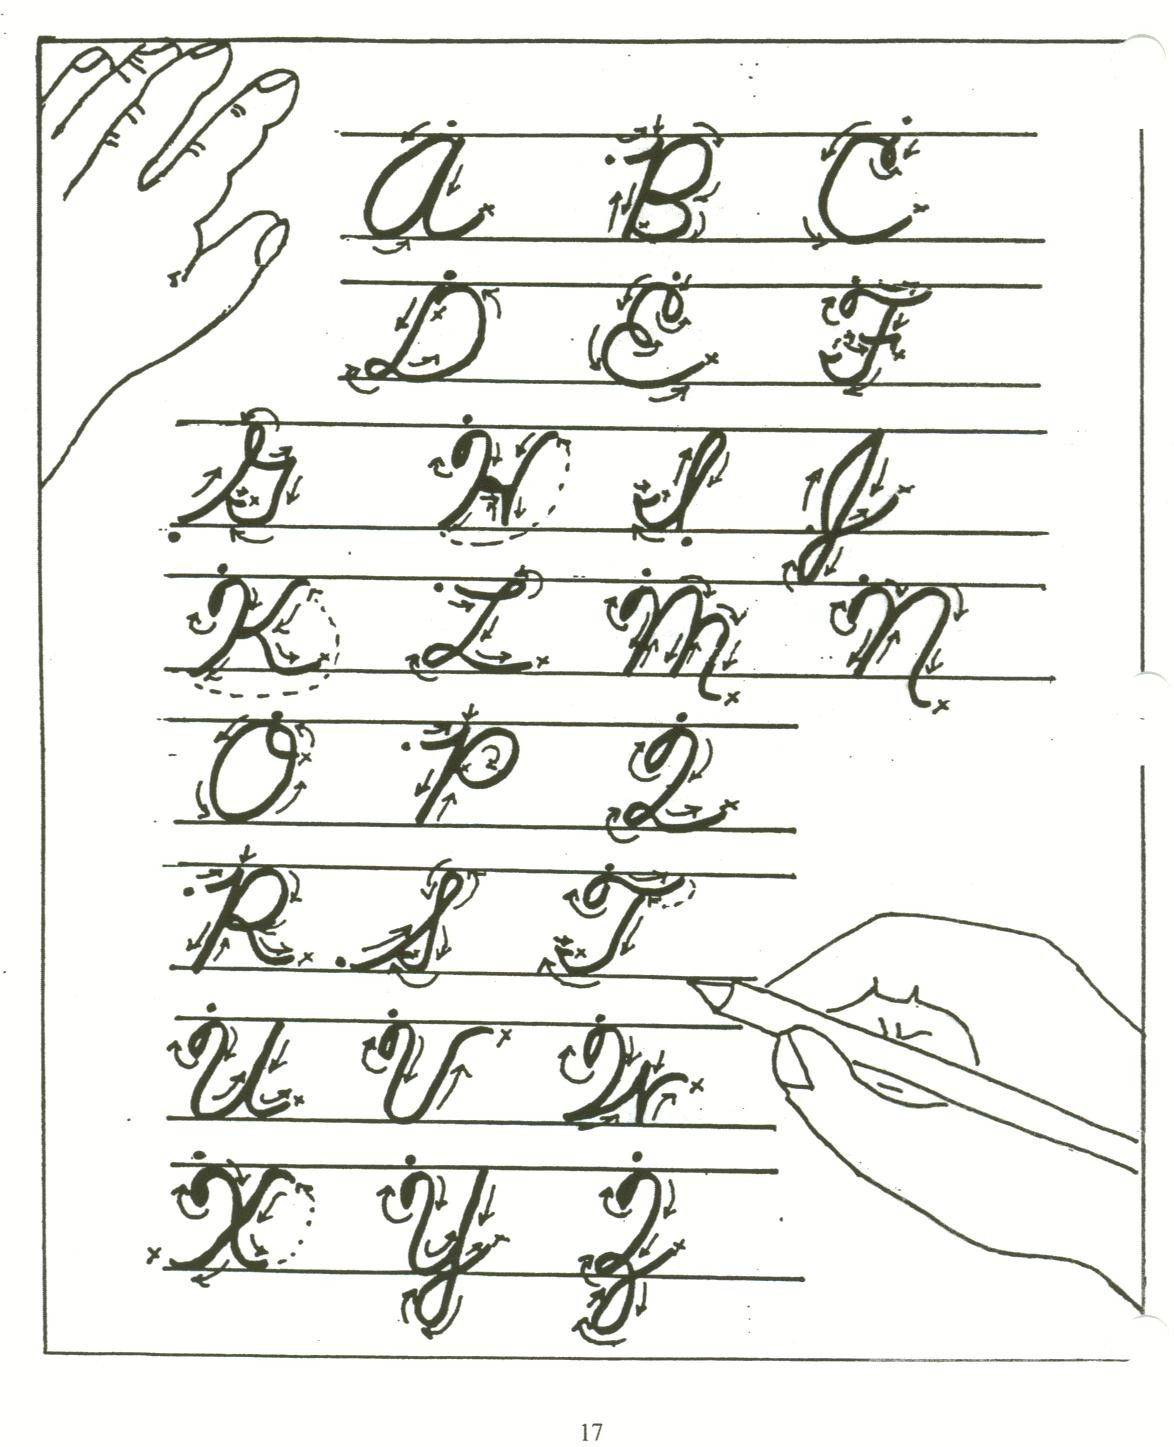 Occupational therapy Handwriting Worksheets Handwriting and Occupational therapy